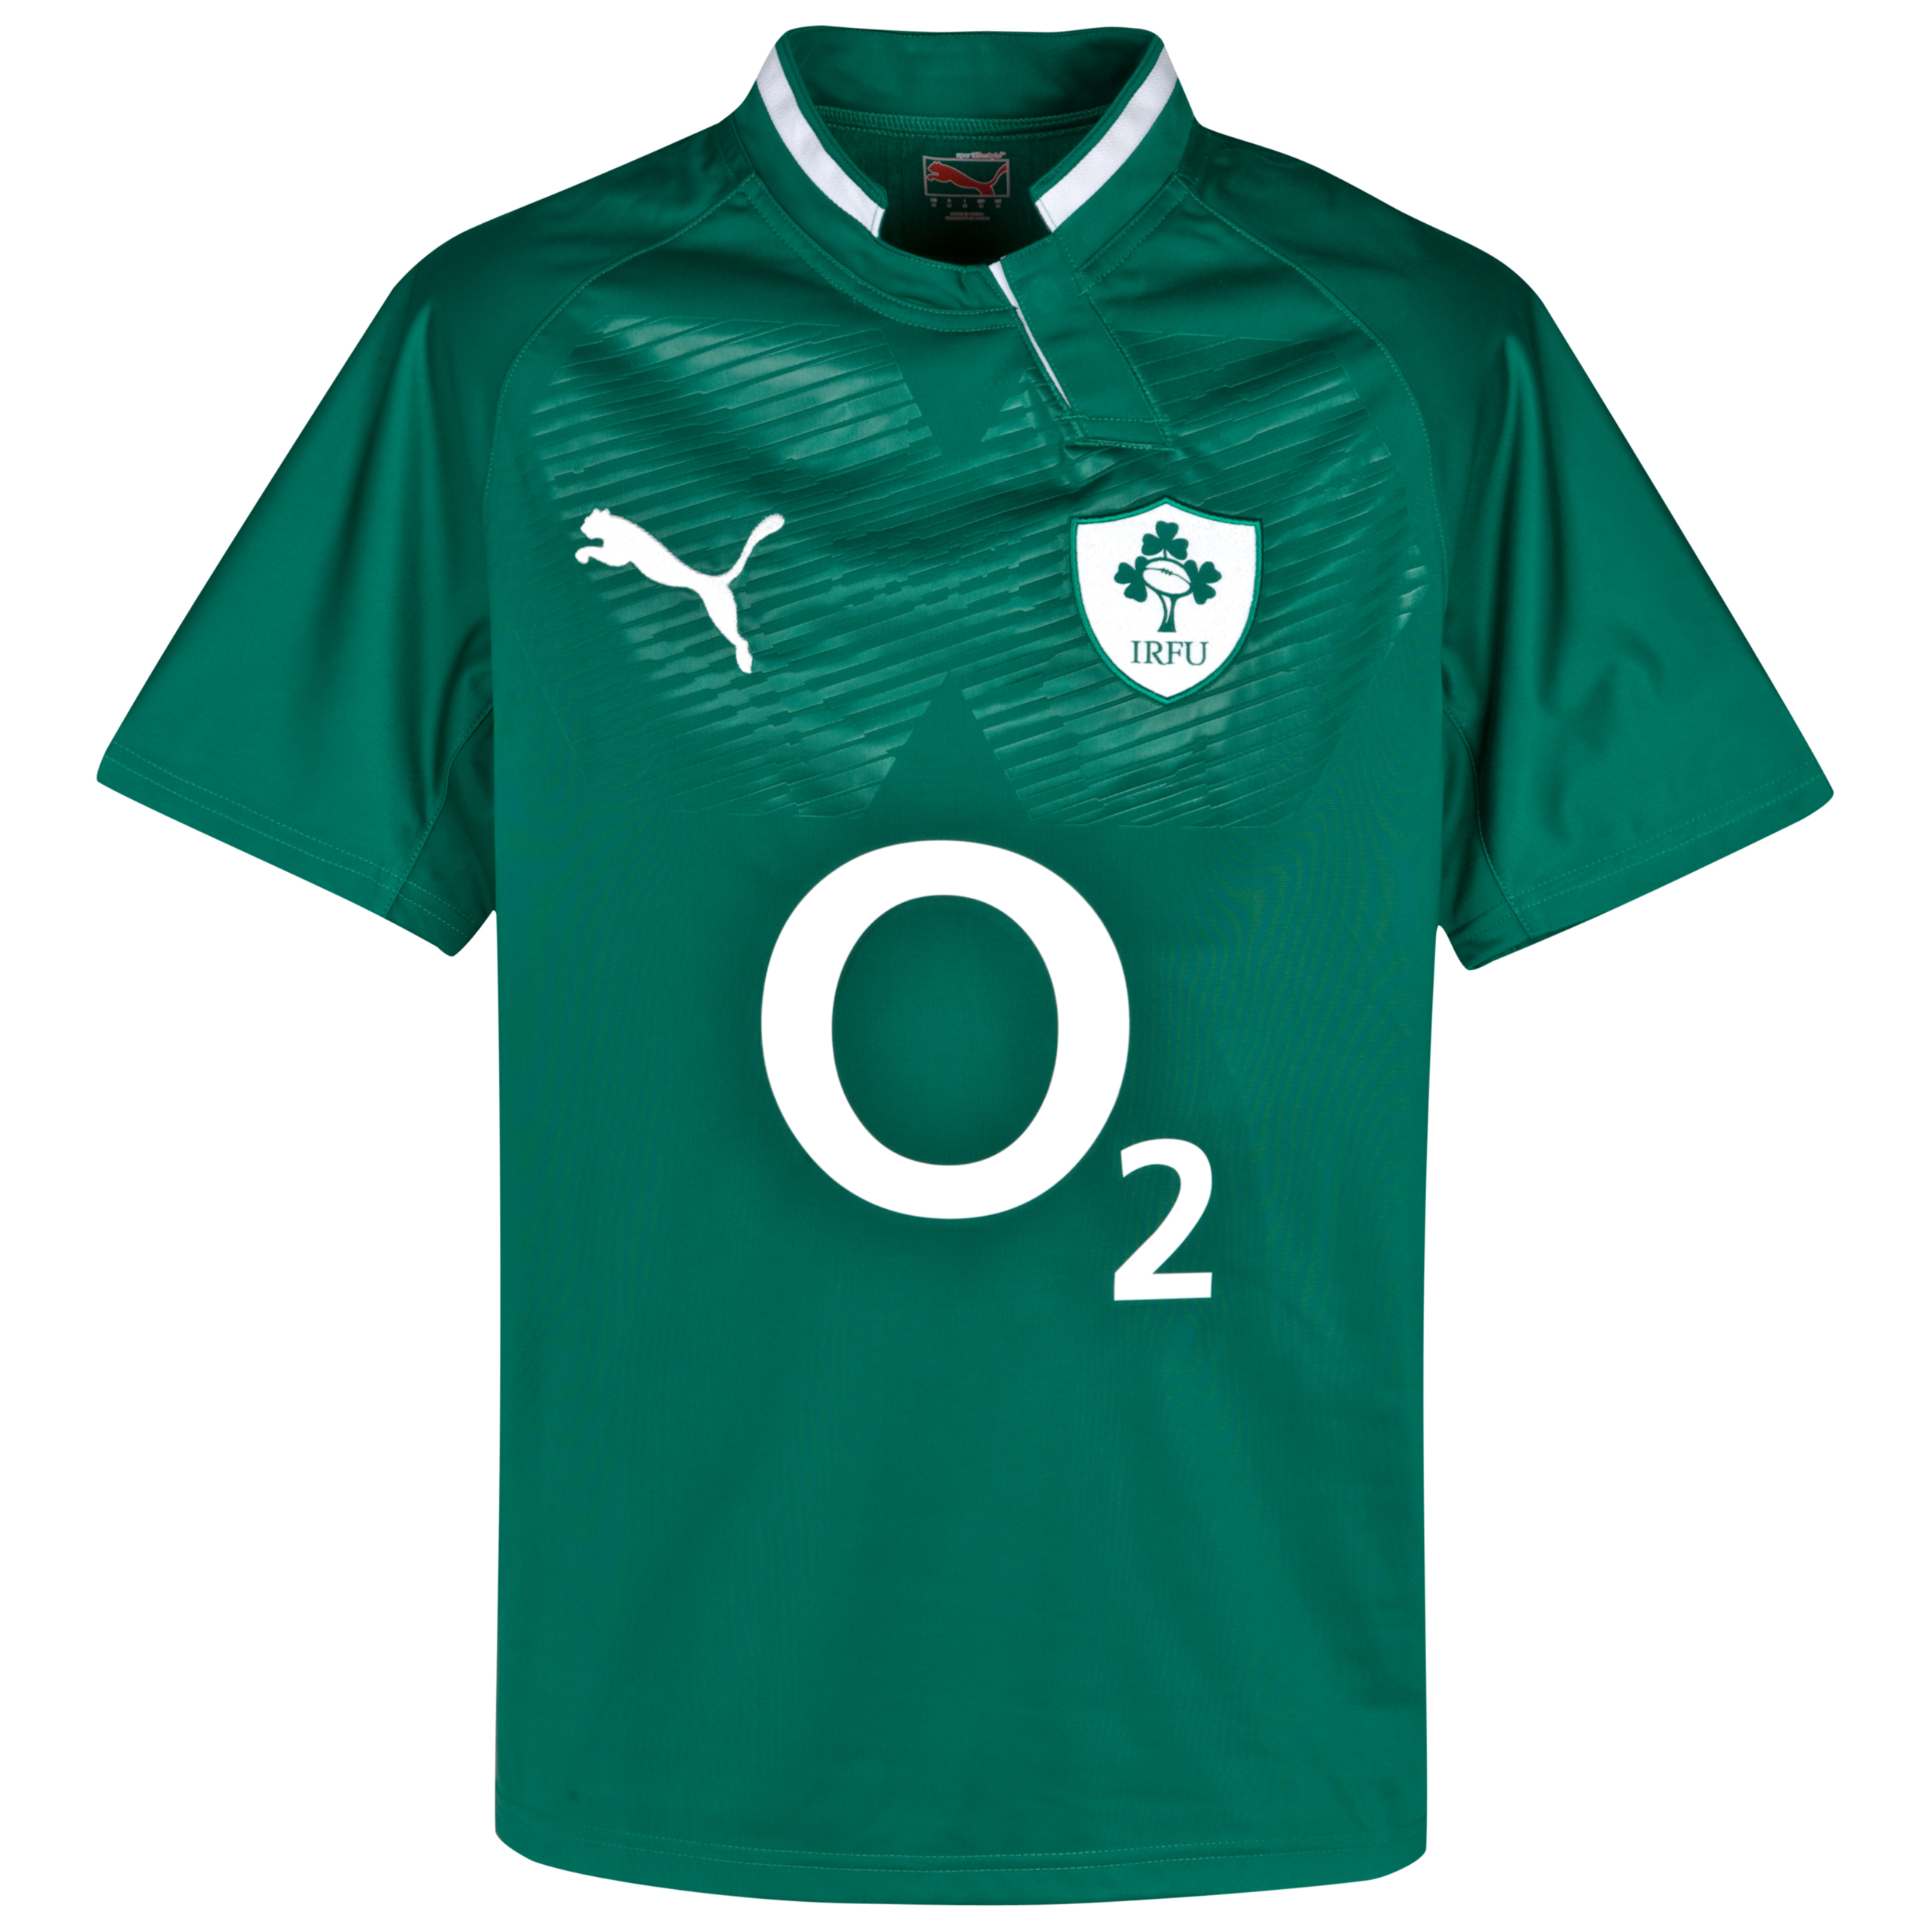 Ireland Rugby Home Shirt 2011/13 - Kids